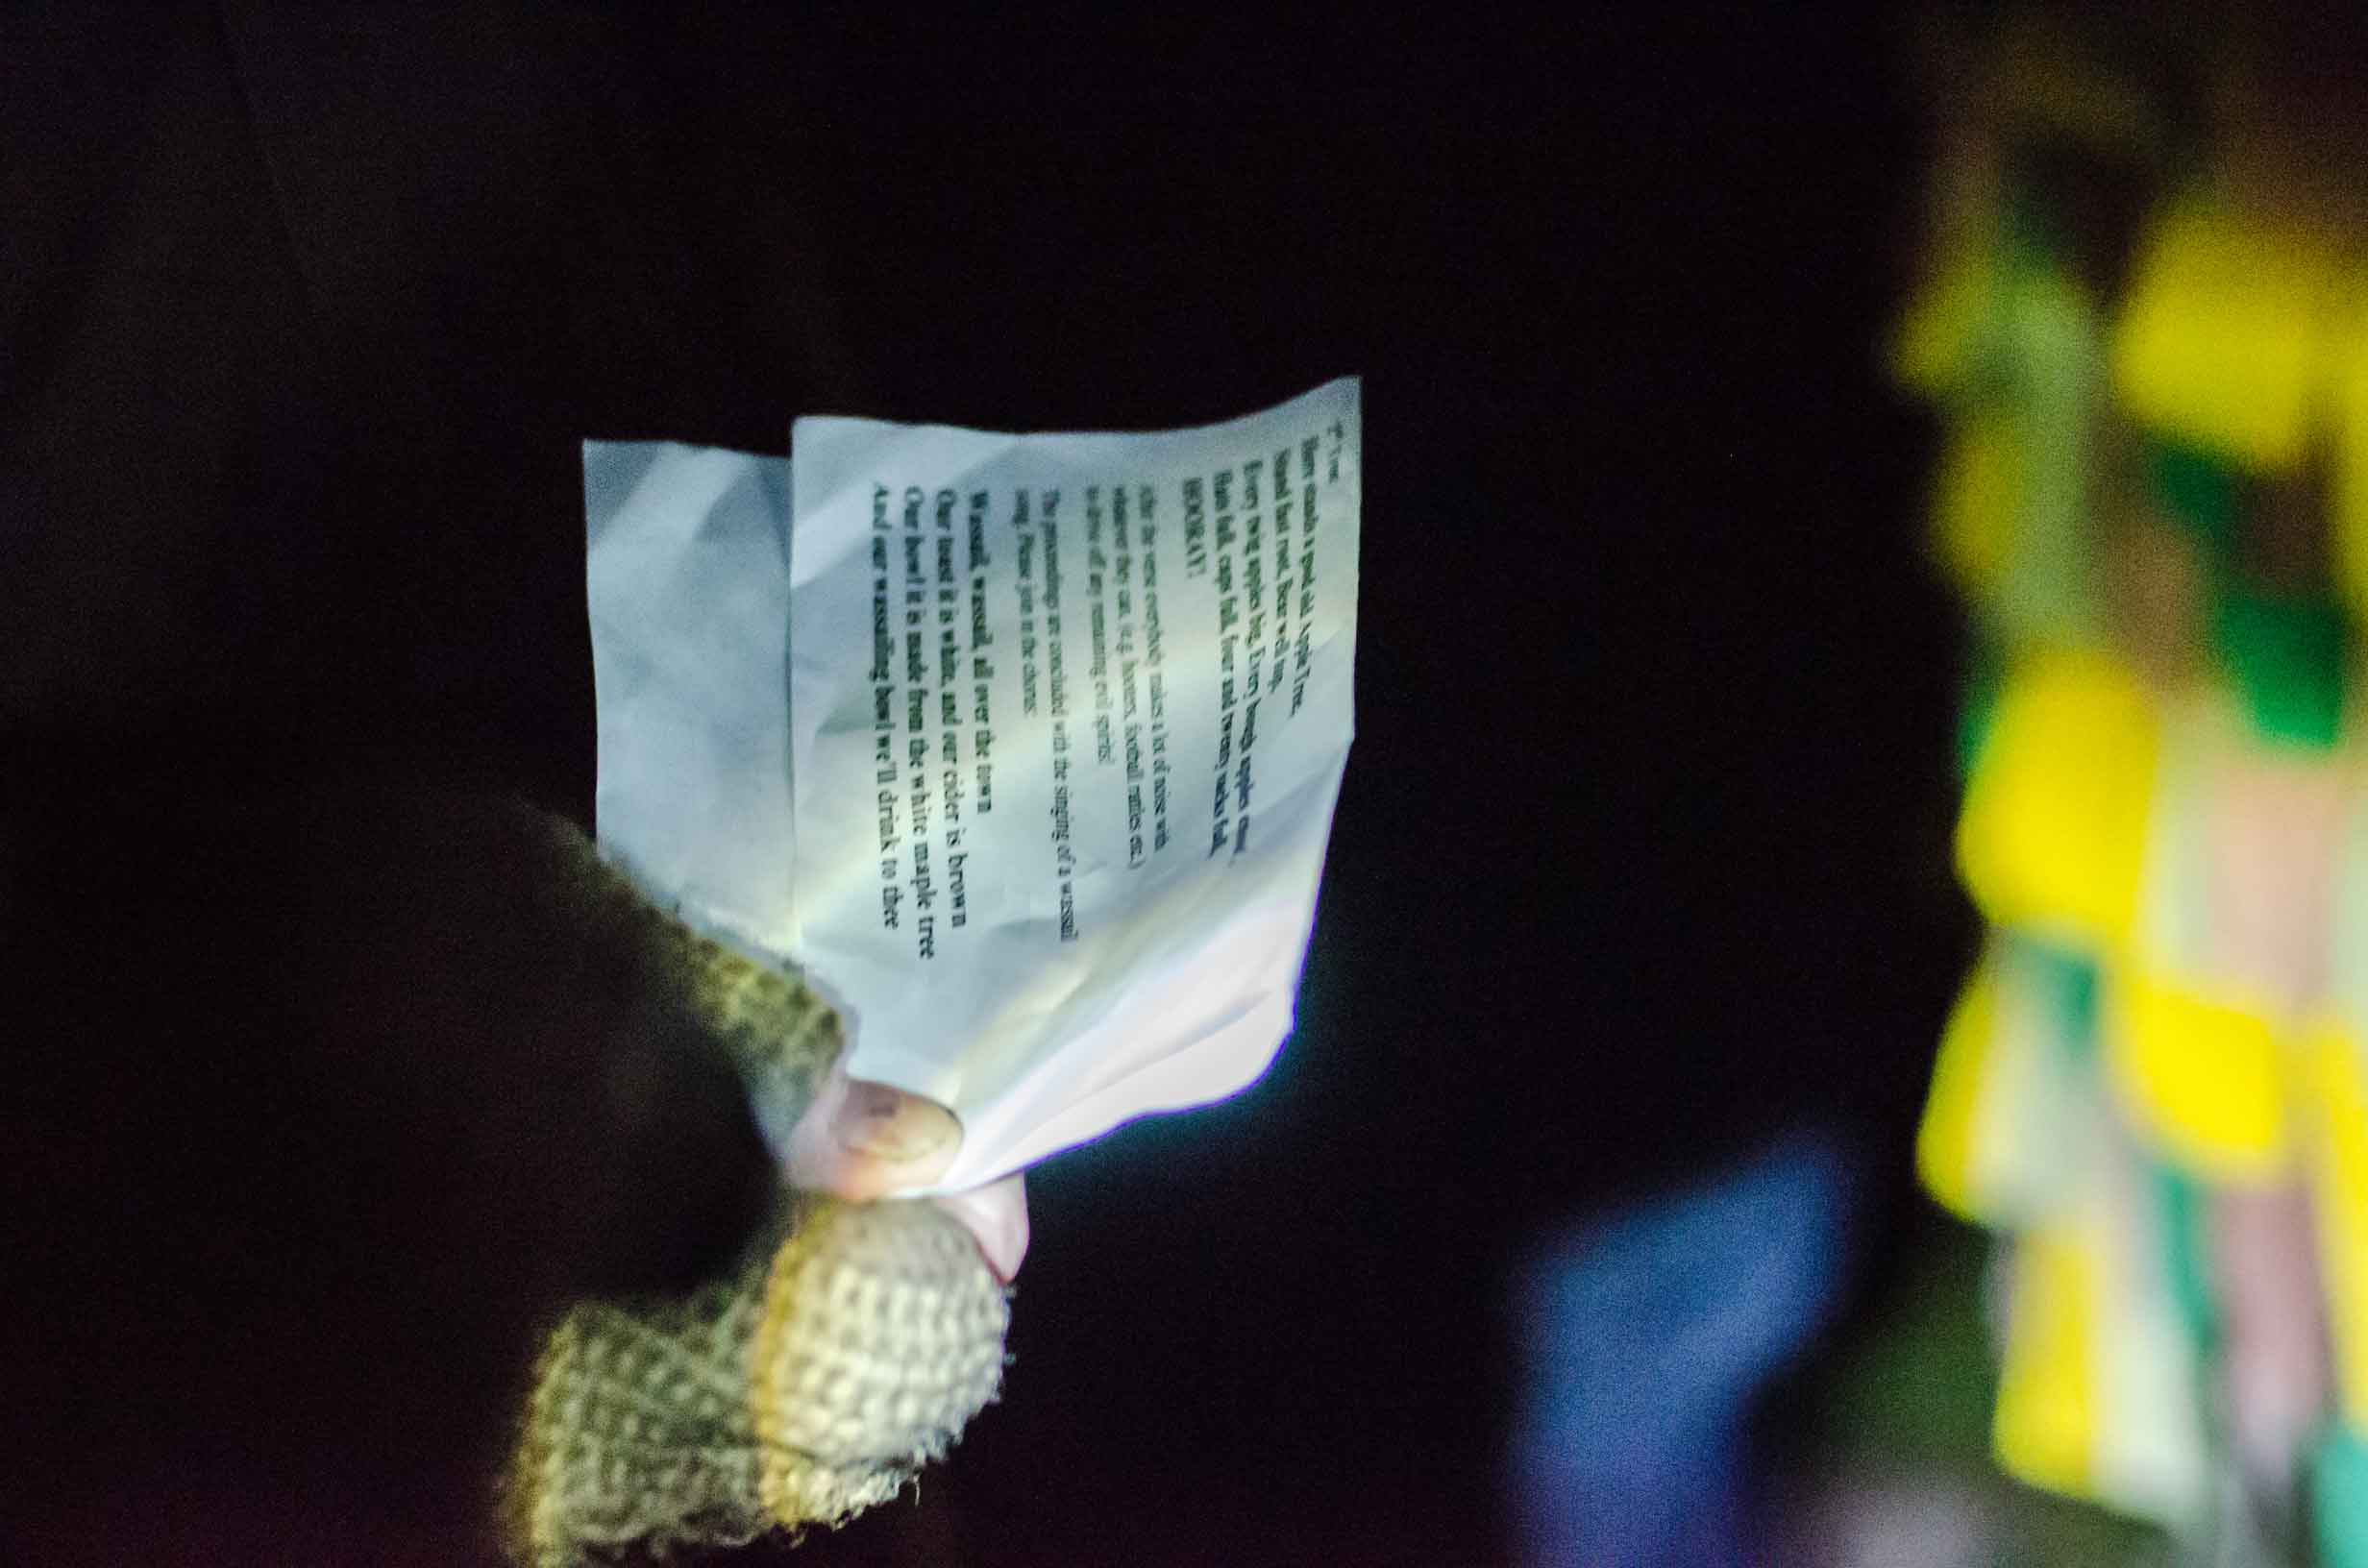 Lyrics by torchlight: singing the Wassailing song.